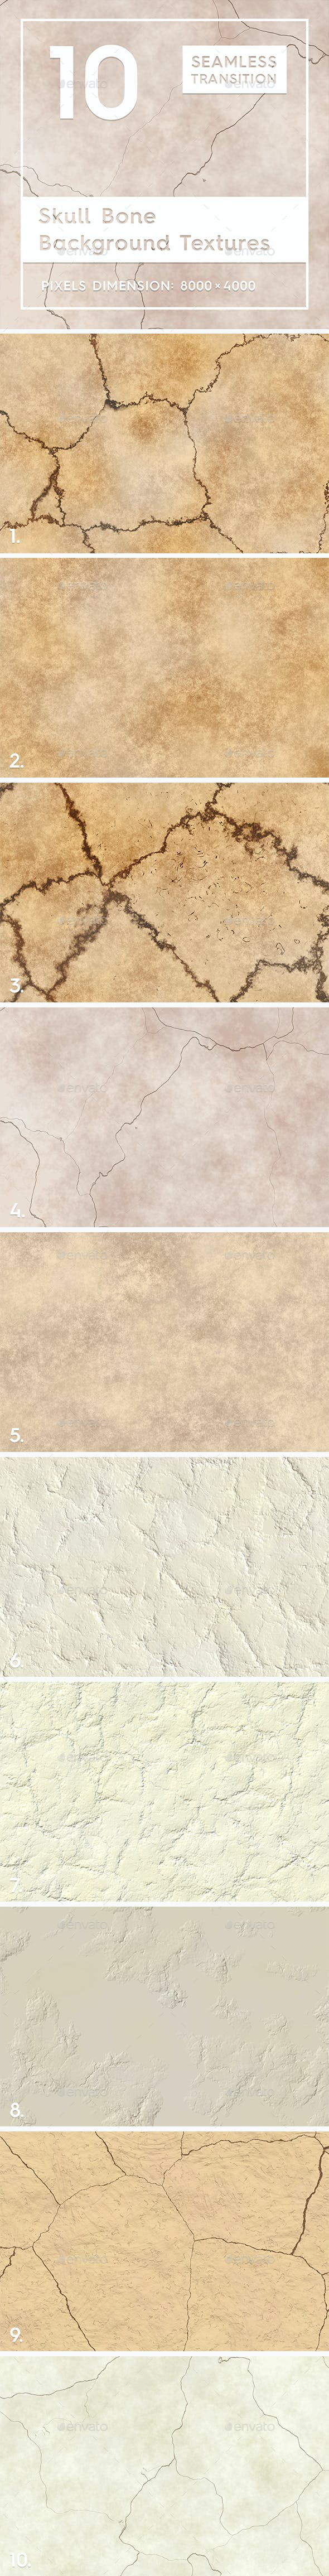 10 Skull Bone Background Textures - 3DOcean Item for Sale